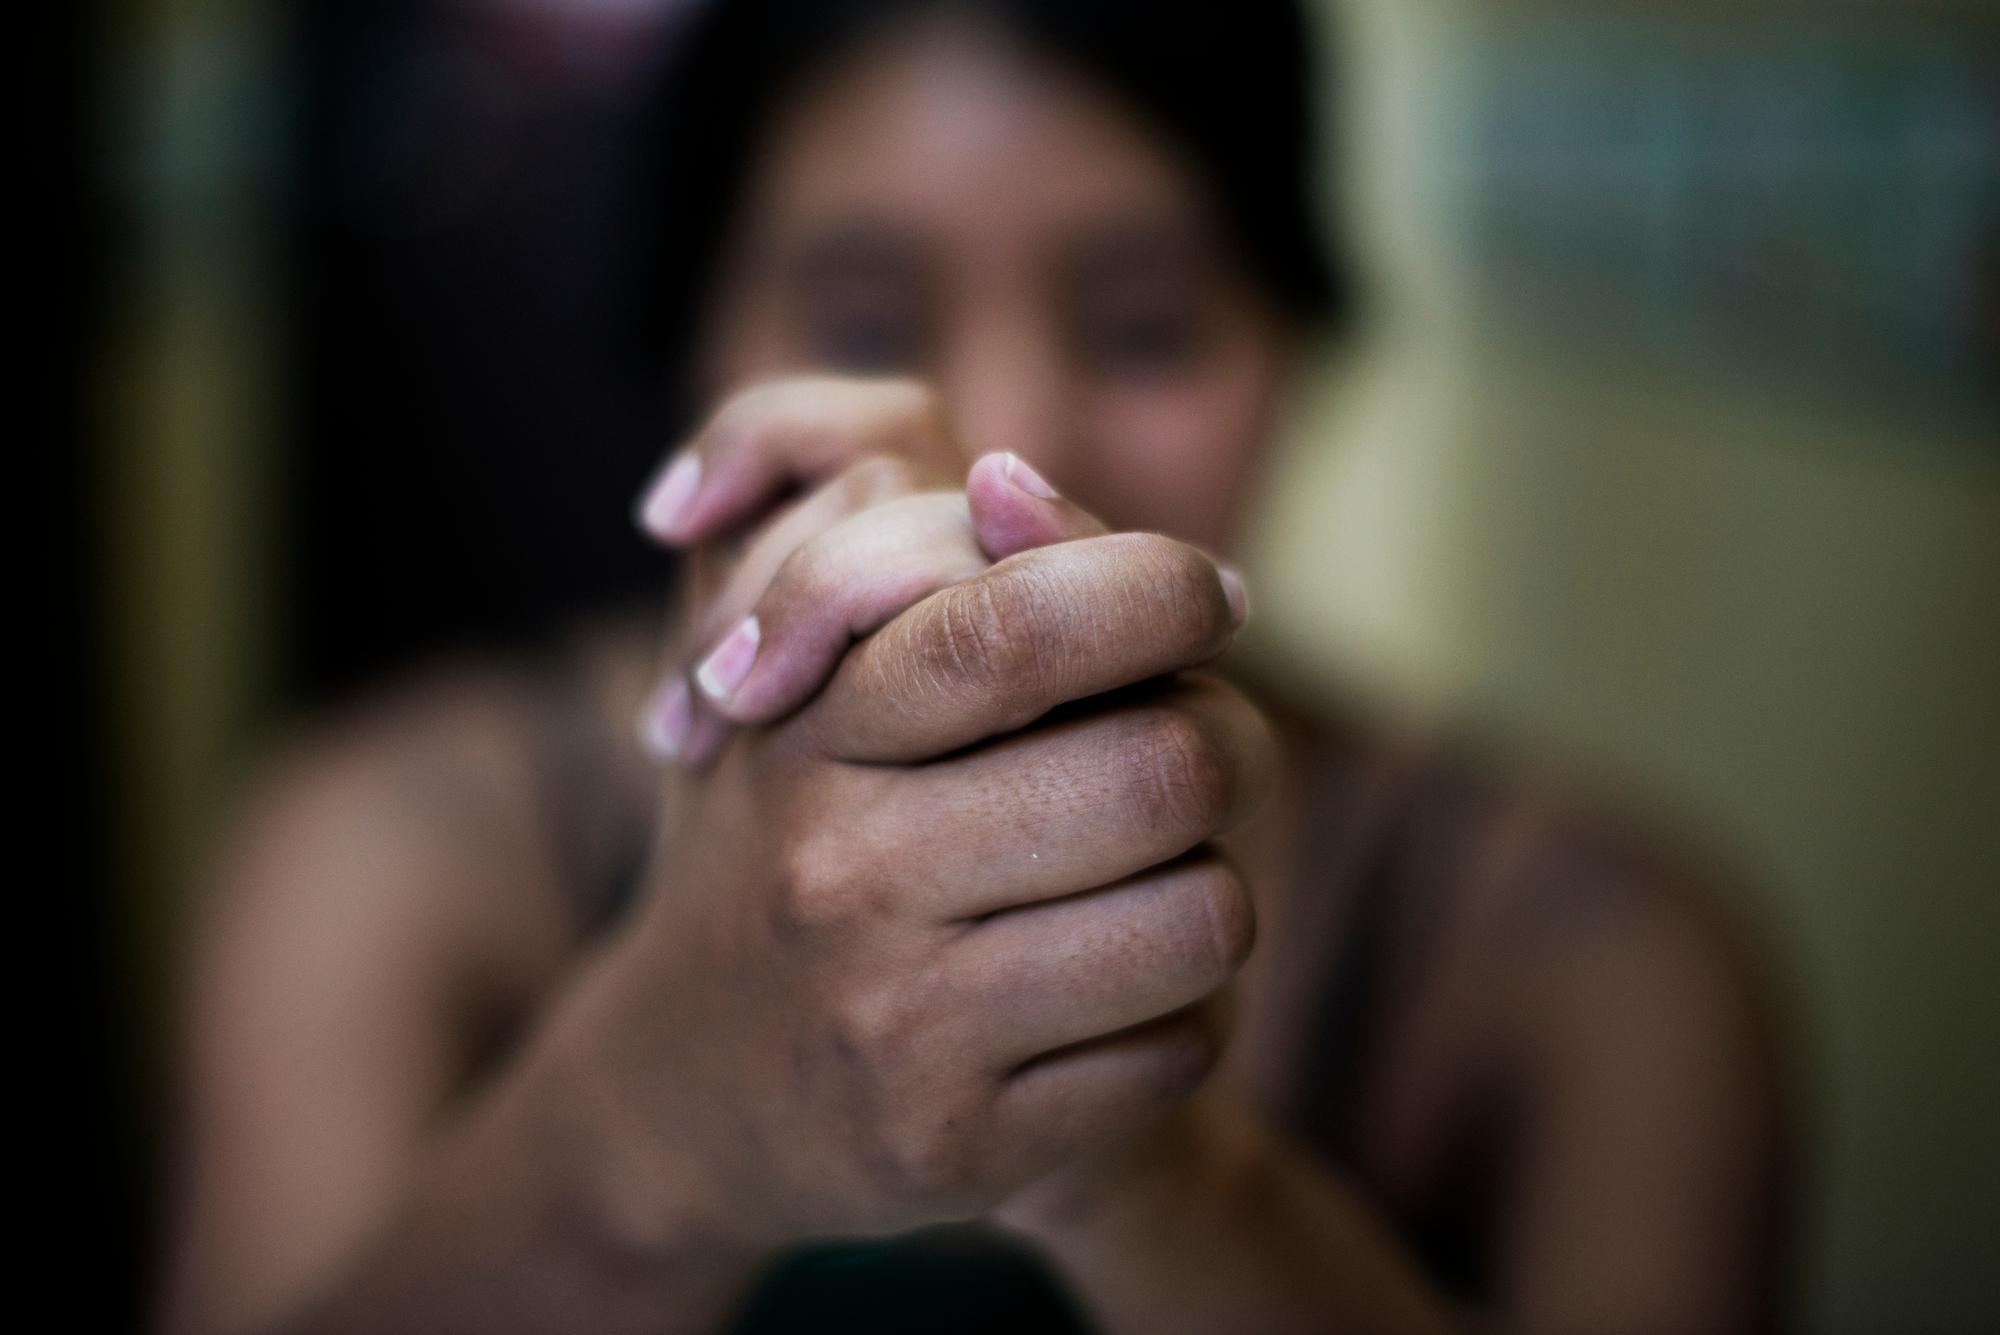 The hands of a woman treated by MSF's sexual violence team in Honduras